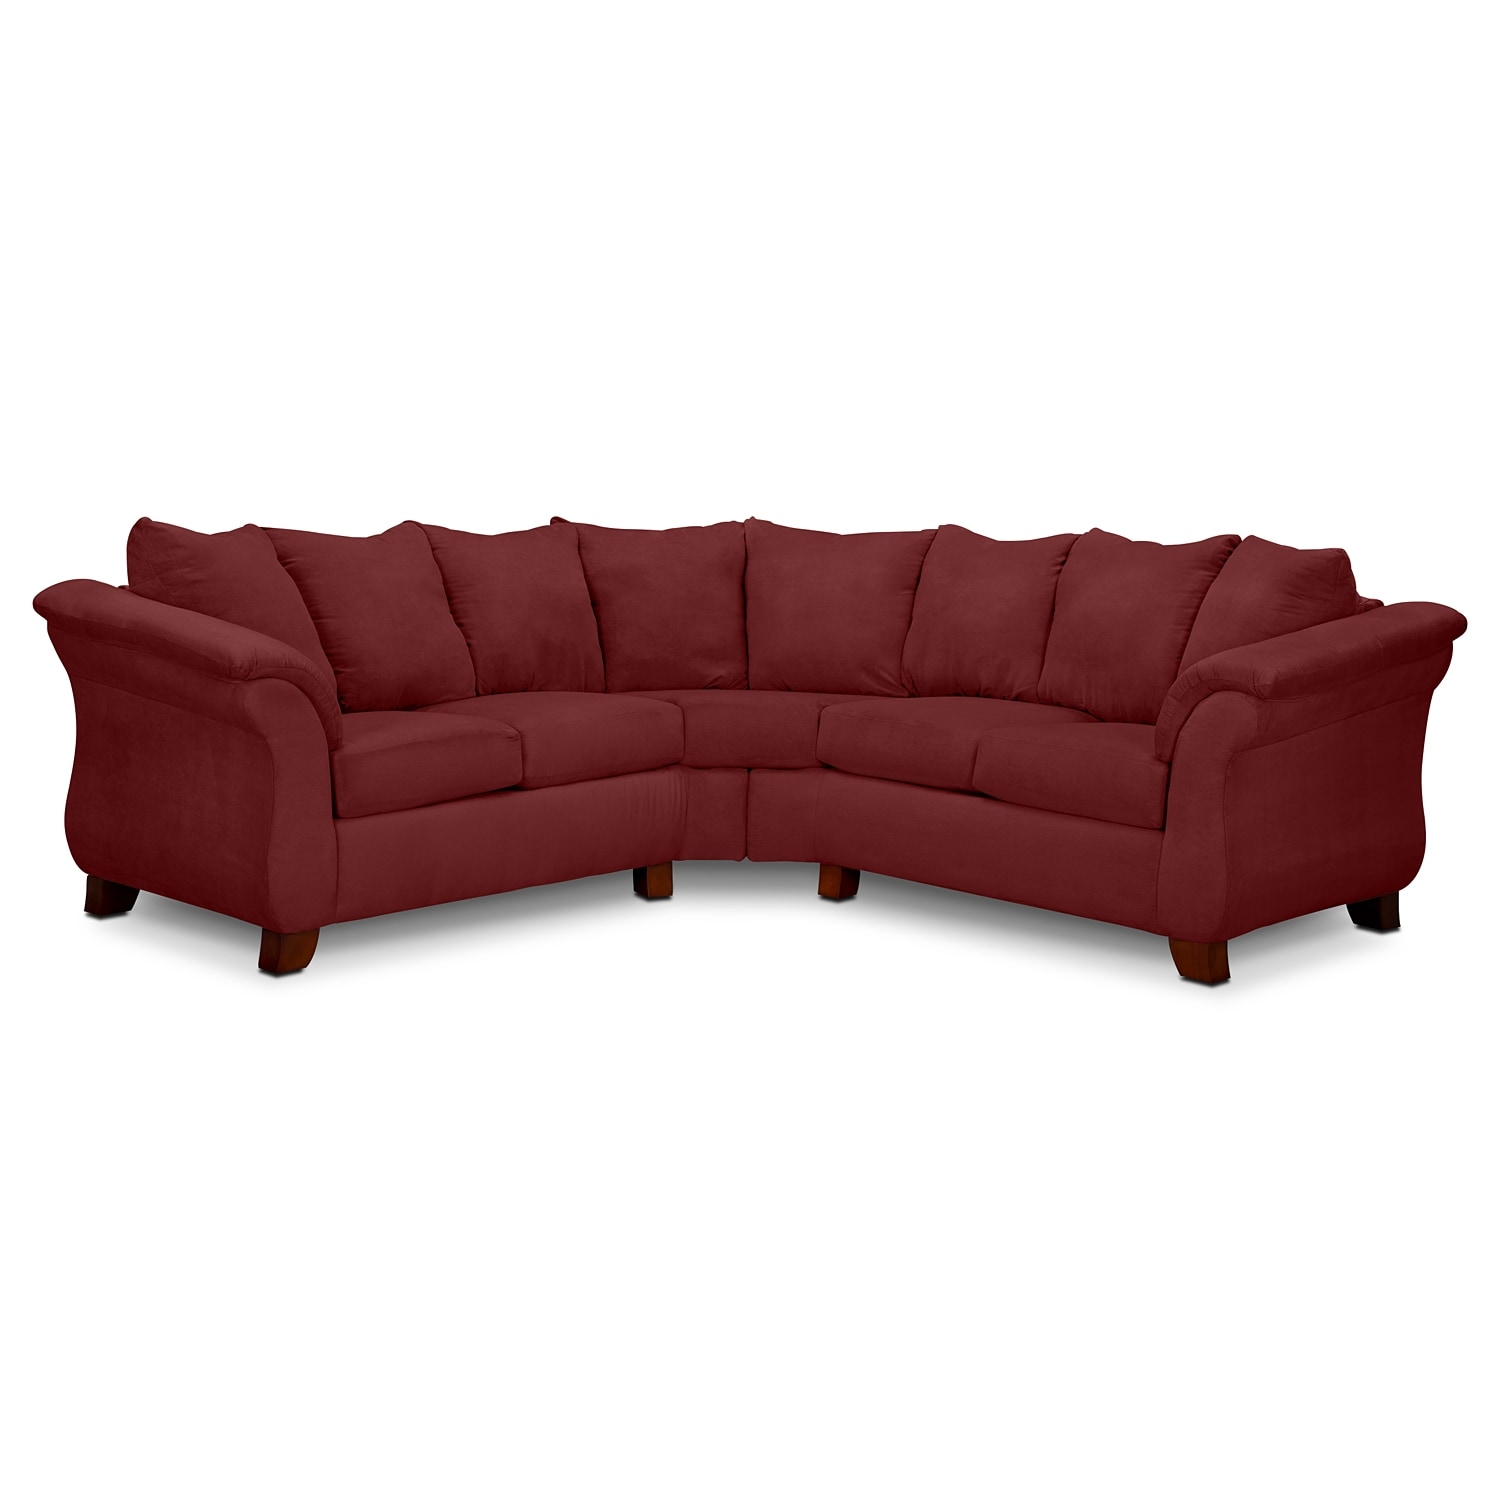 Design Collection Modern Red Leather Sectional Sofa Value City Furniture 50 New Inspiration